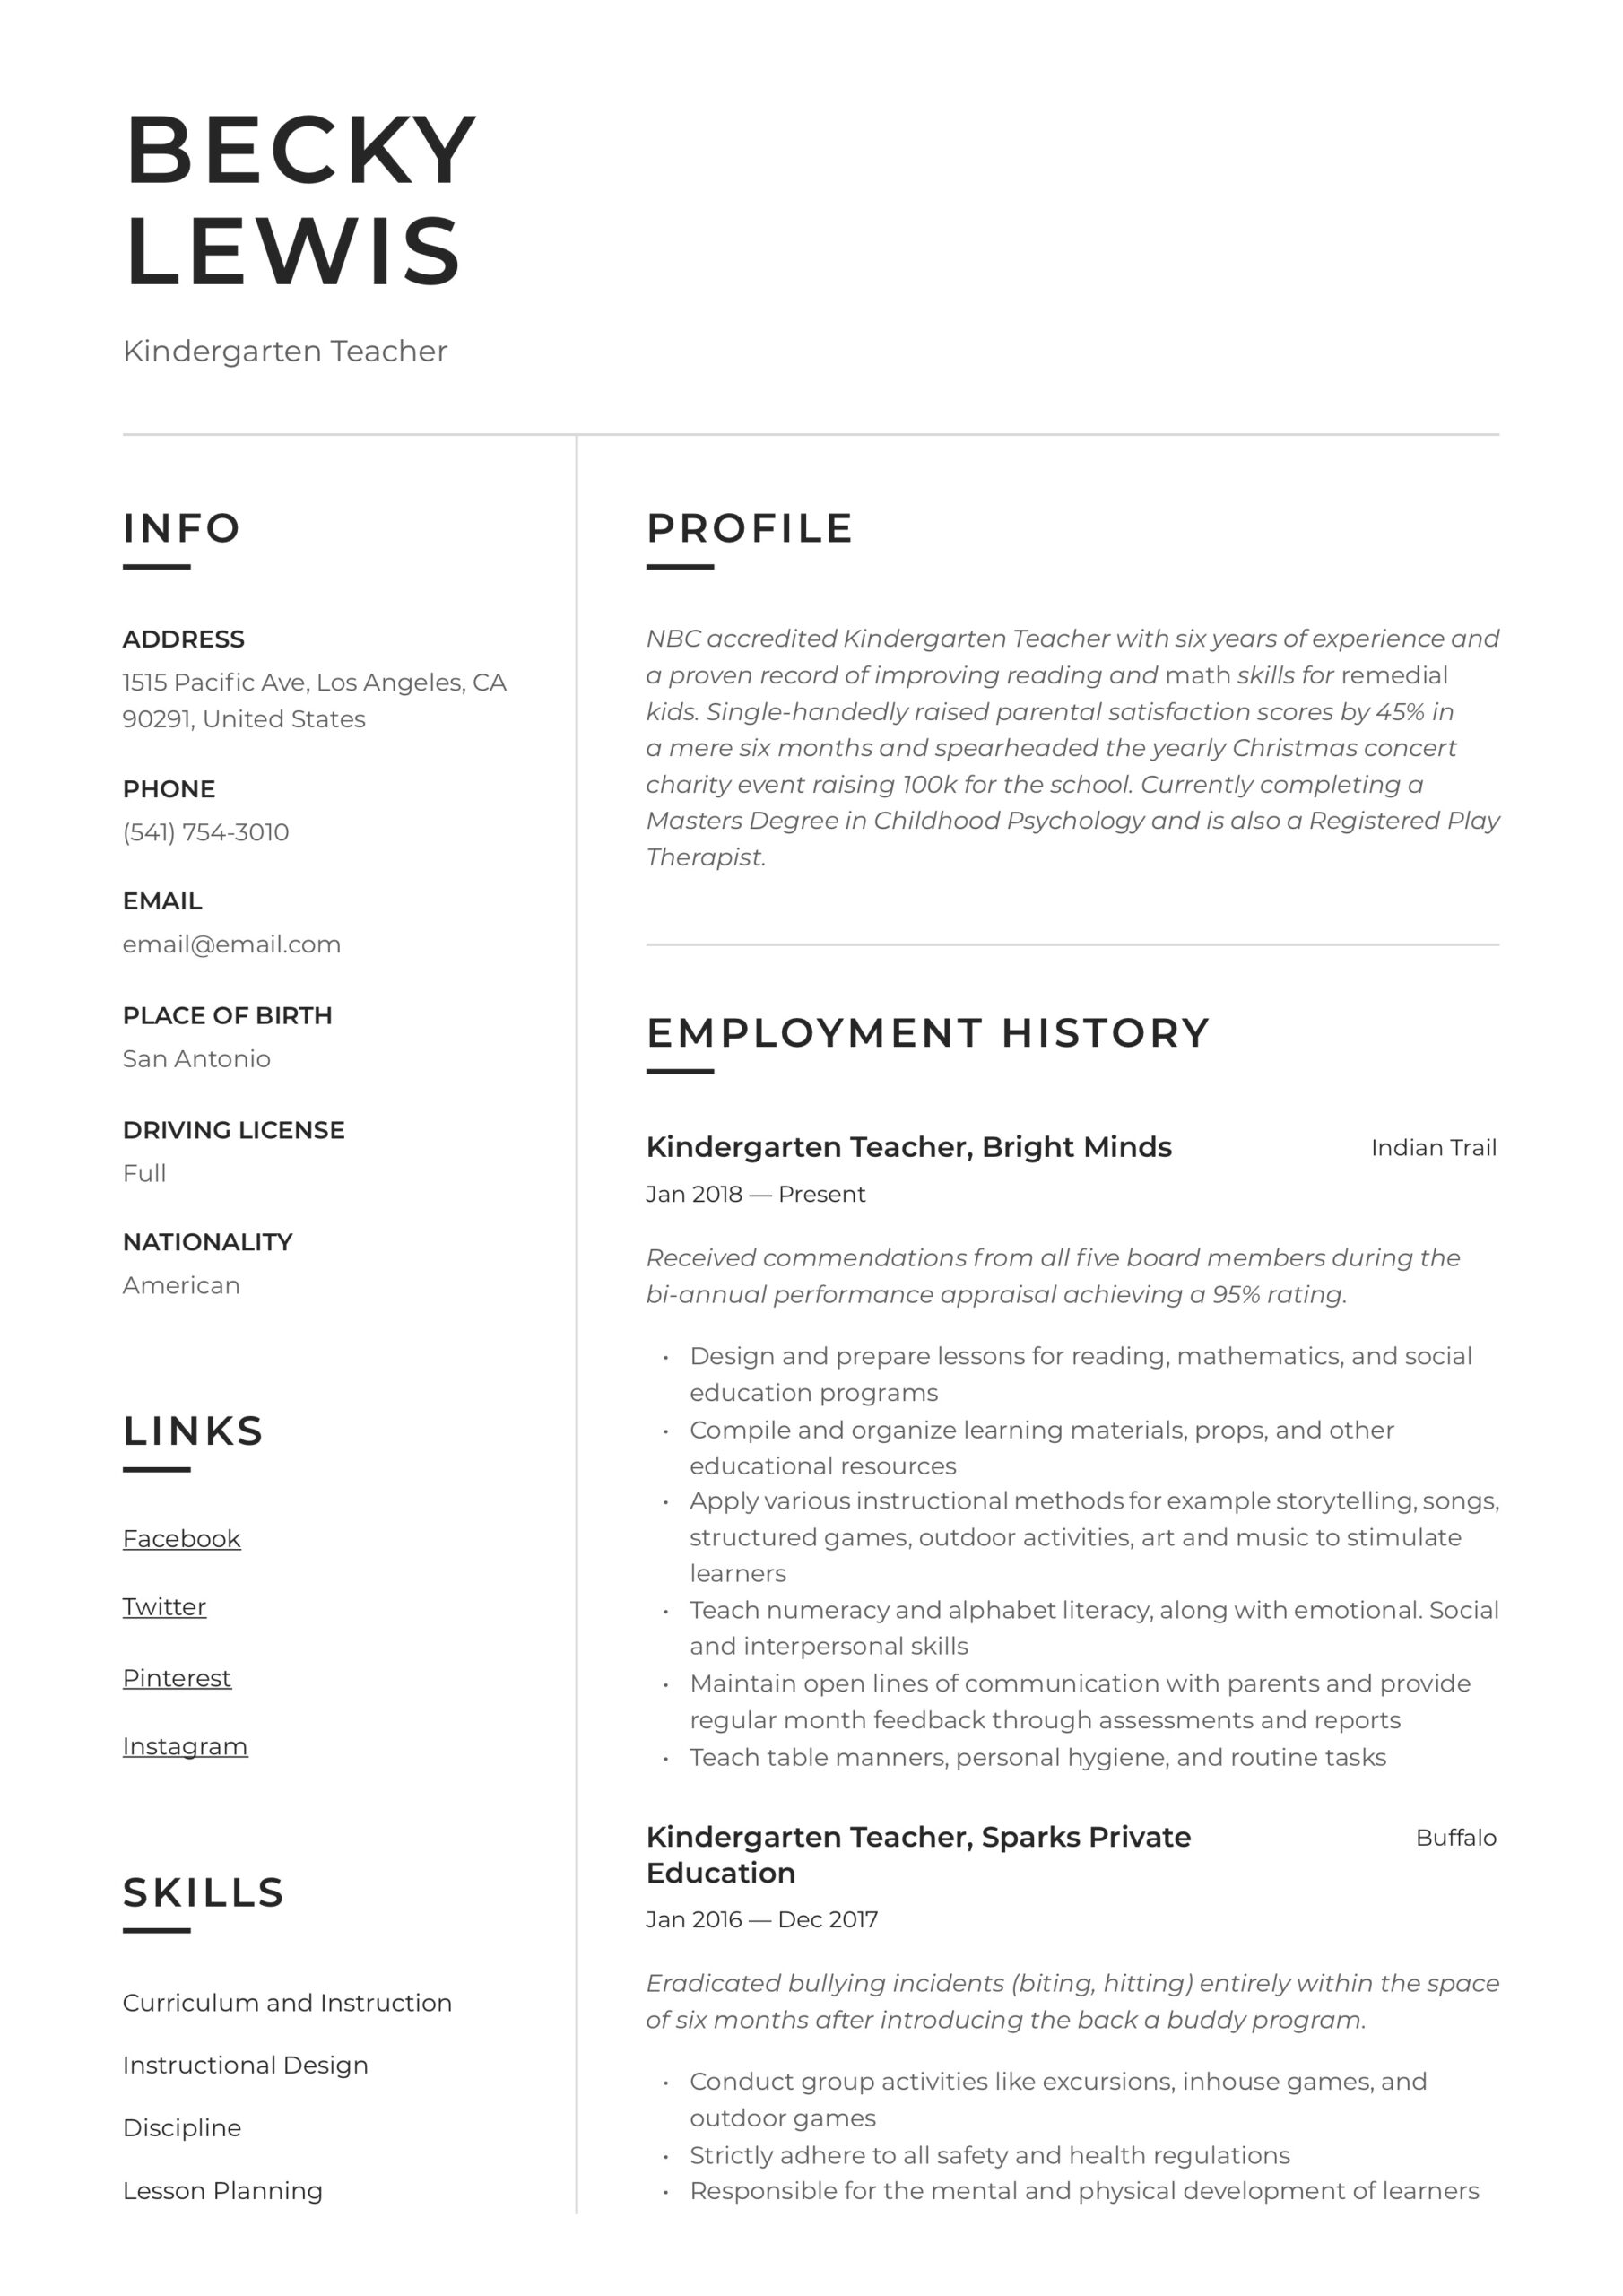 kindergarten teacher resume writing guide examples skills and abilities example template Resume Skills And Abilities Teacher Resume